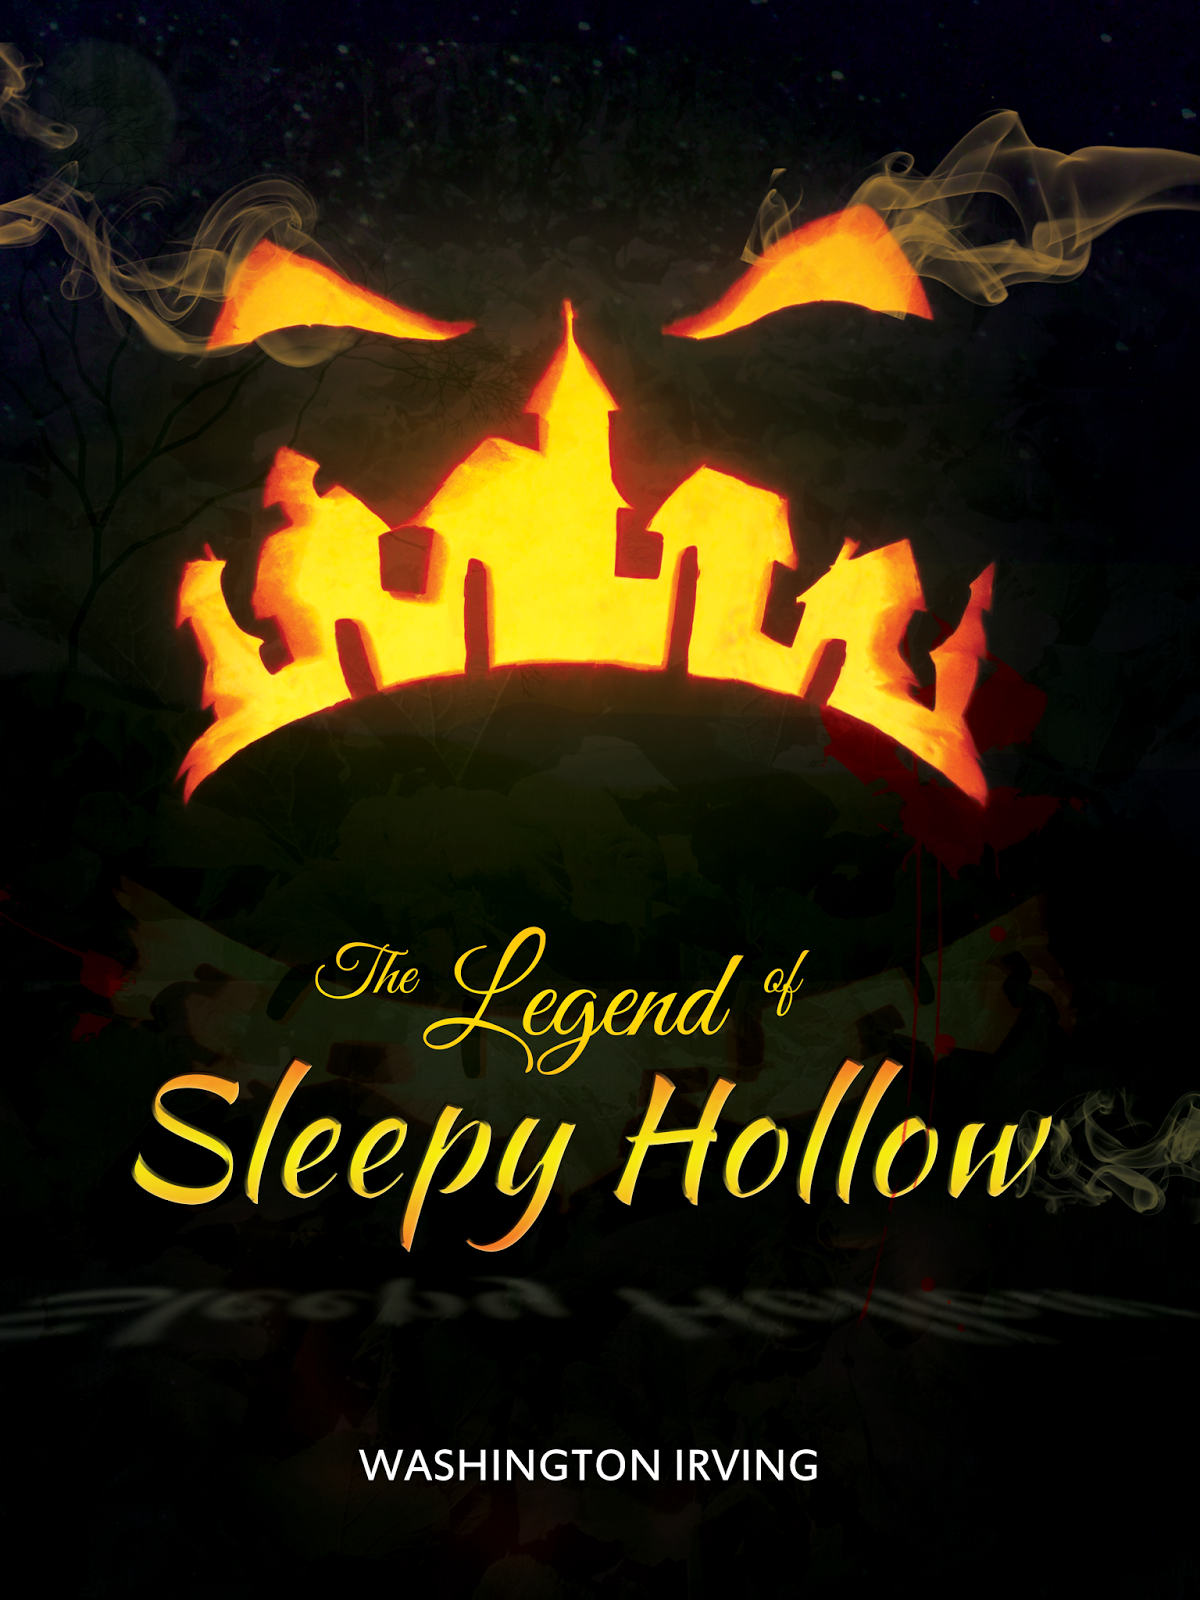 alternate ending legend of sleepy hollow Get an answer for 'at the end of the legend of sleepy hollow, the author gives  several possible explanations for what happened to ichabod crane.